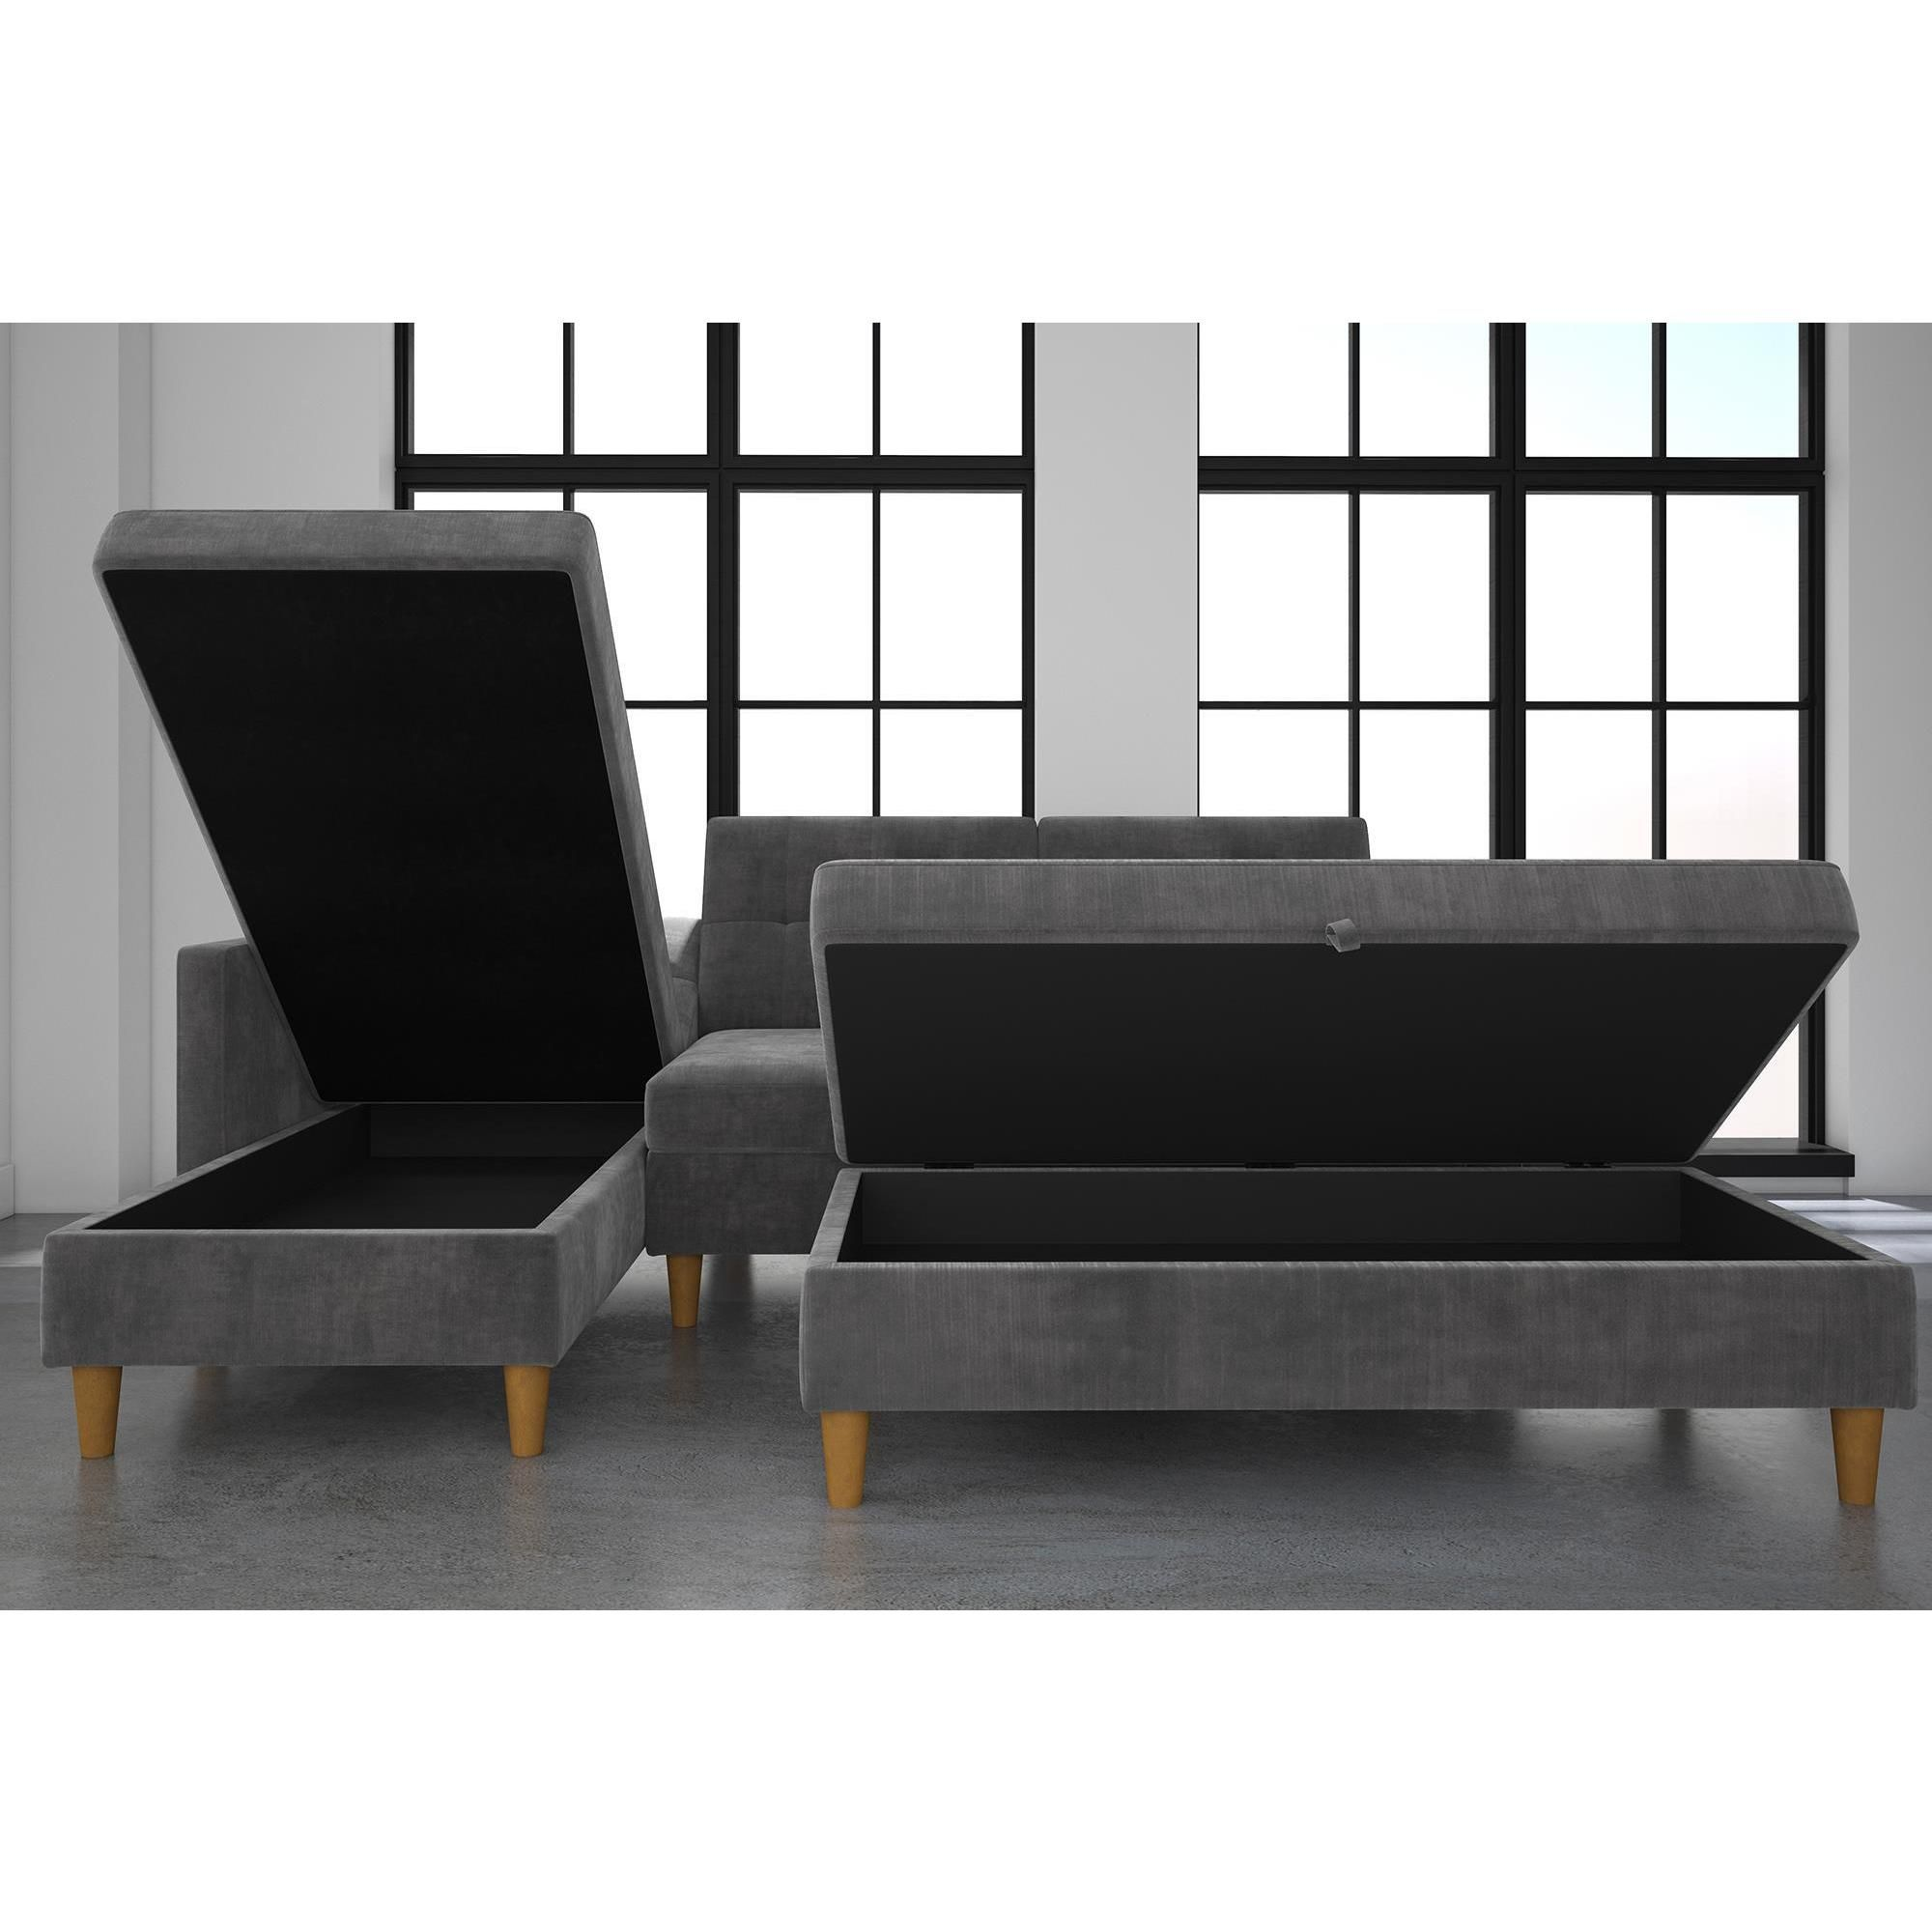 Incredible Dhp Hartford Chenille Storage Sectional Futon And Storage Lamtechconsult Wood Chair Design Ideas Lamtechconsultcom